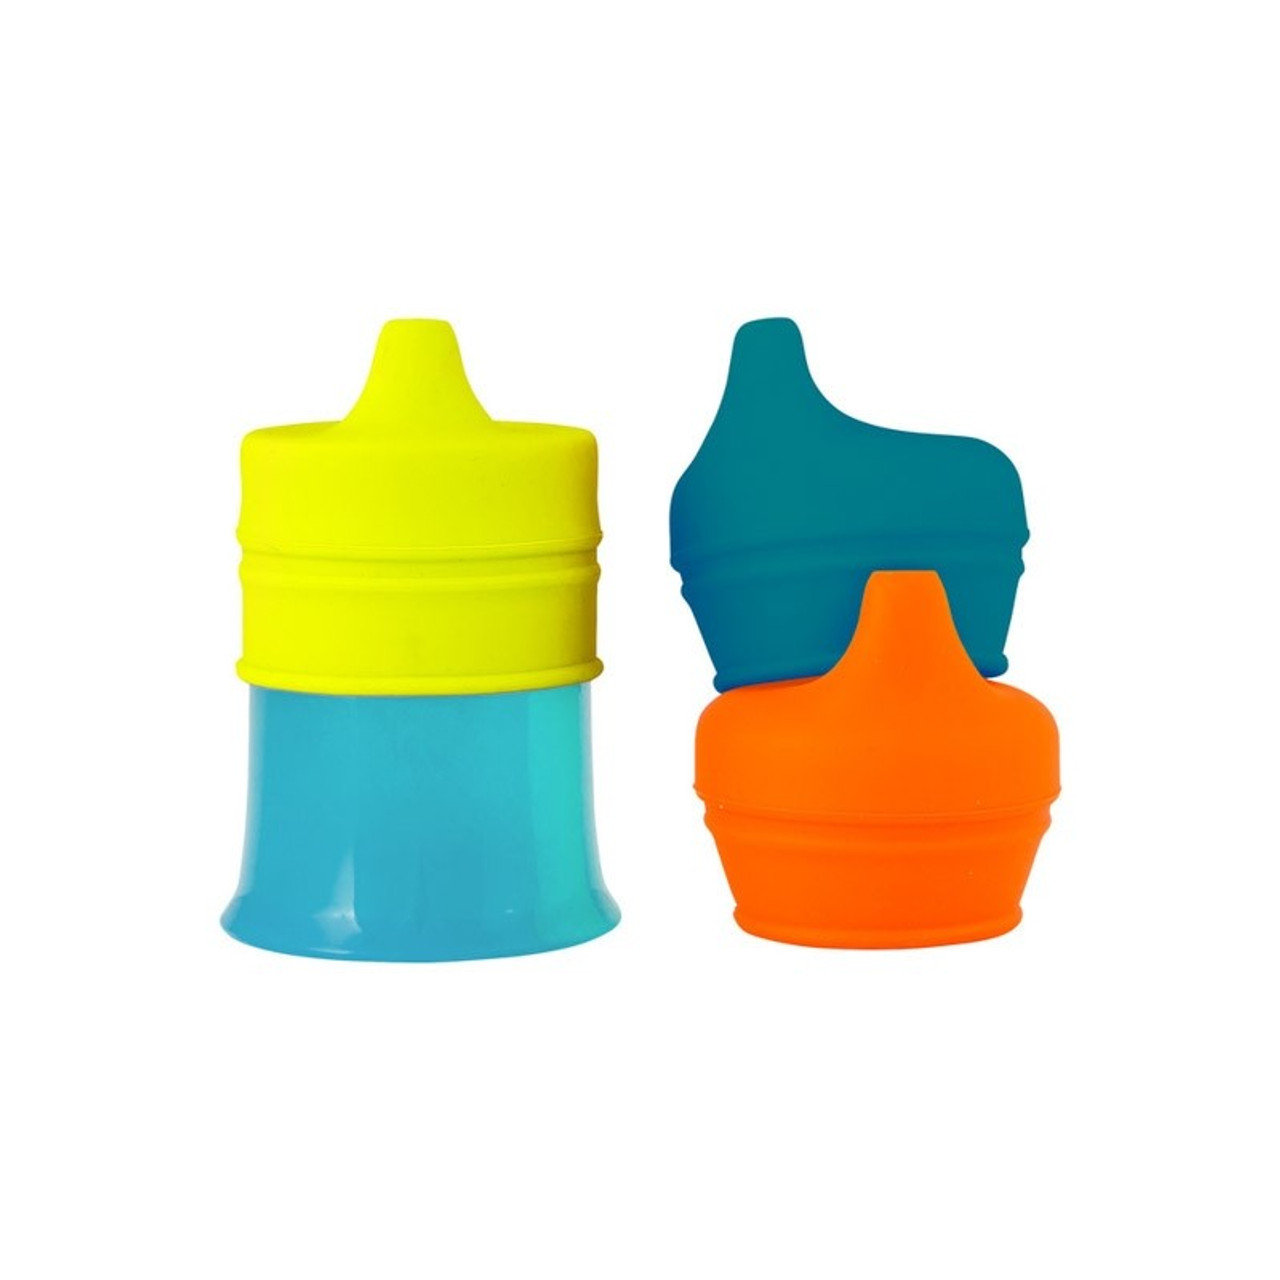 Boon Snug Spout with Cup at Baby Barn Discounts SNUG silicone sippy lids fit over any regular cup with a 2.5'–3.75' diameter and instantly prevent that cup from spewing its contents.